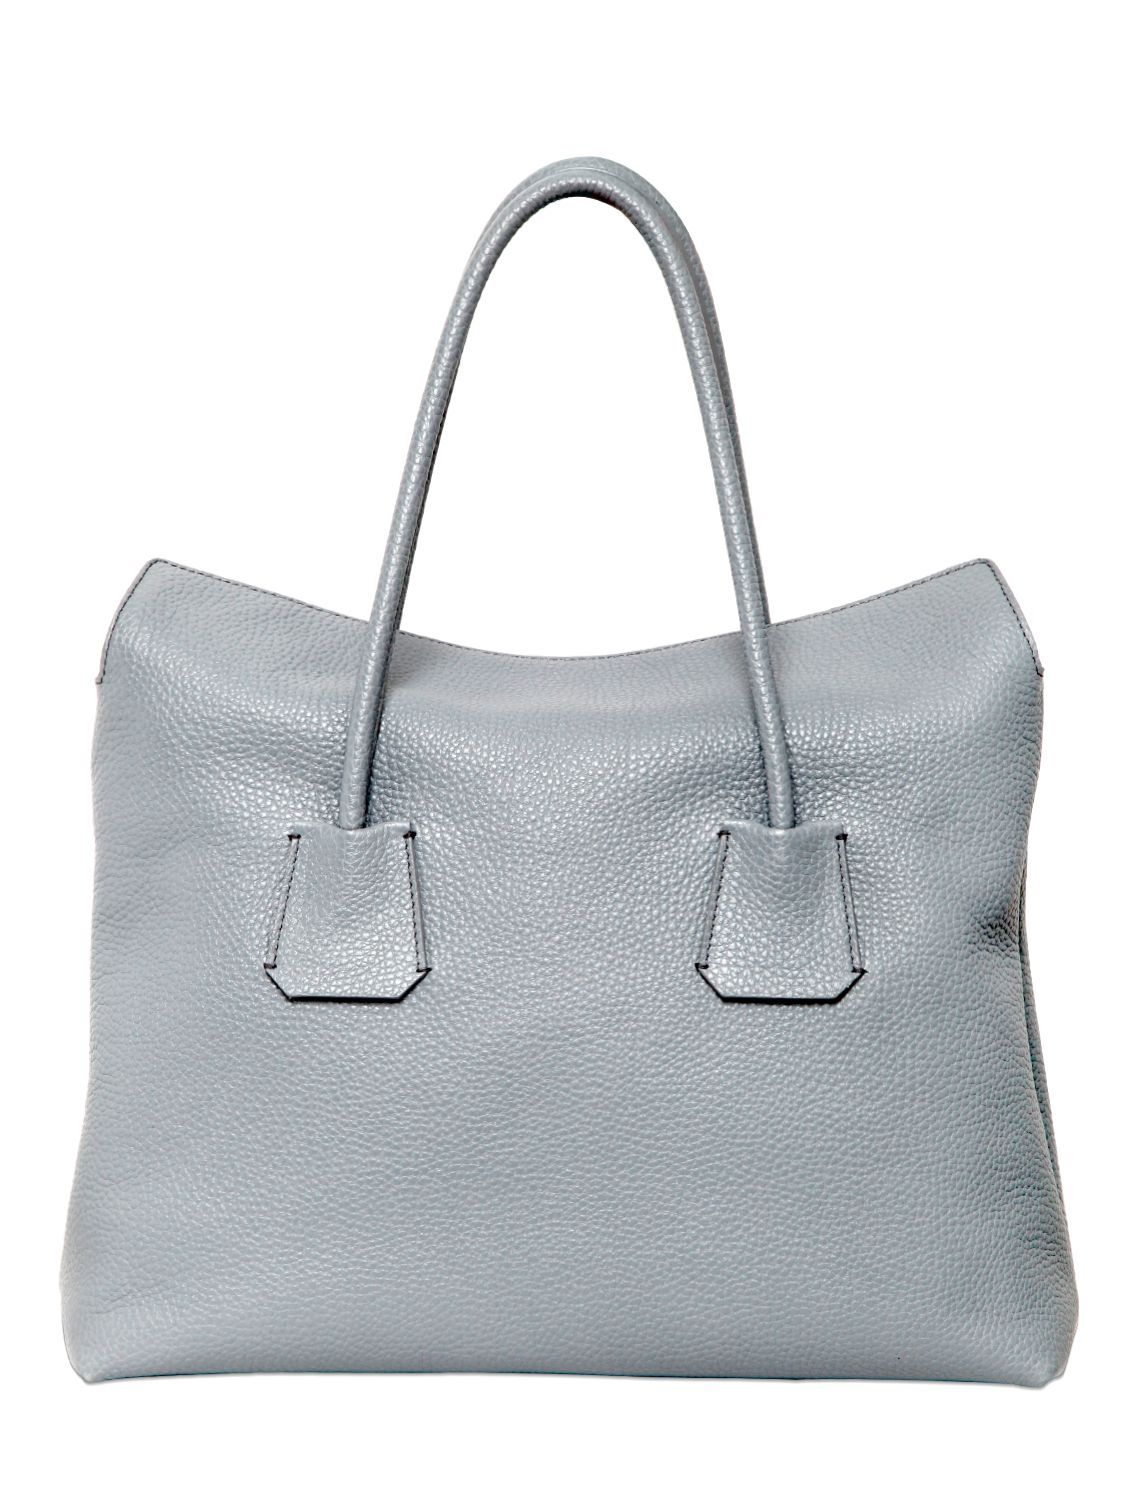 Women s Gray Baynard Grained Leather Top Handle Bag  500d3e6be0ee2